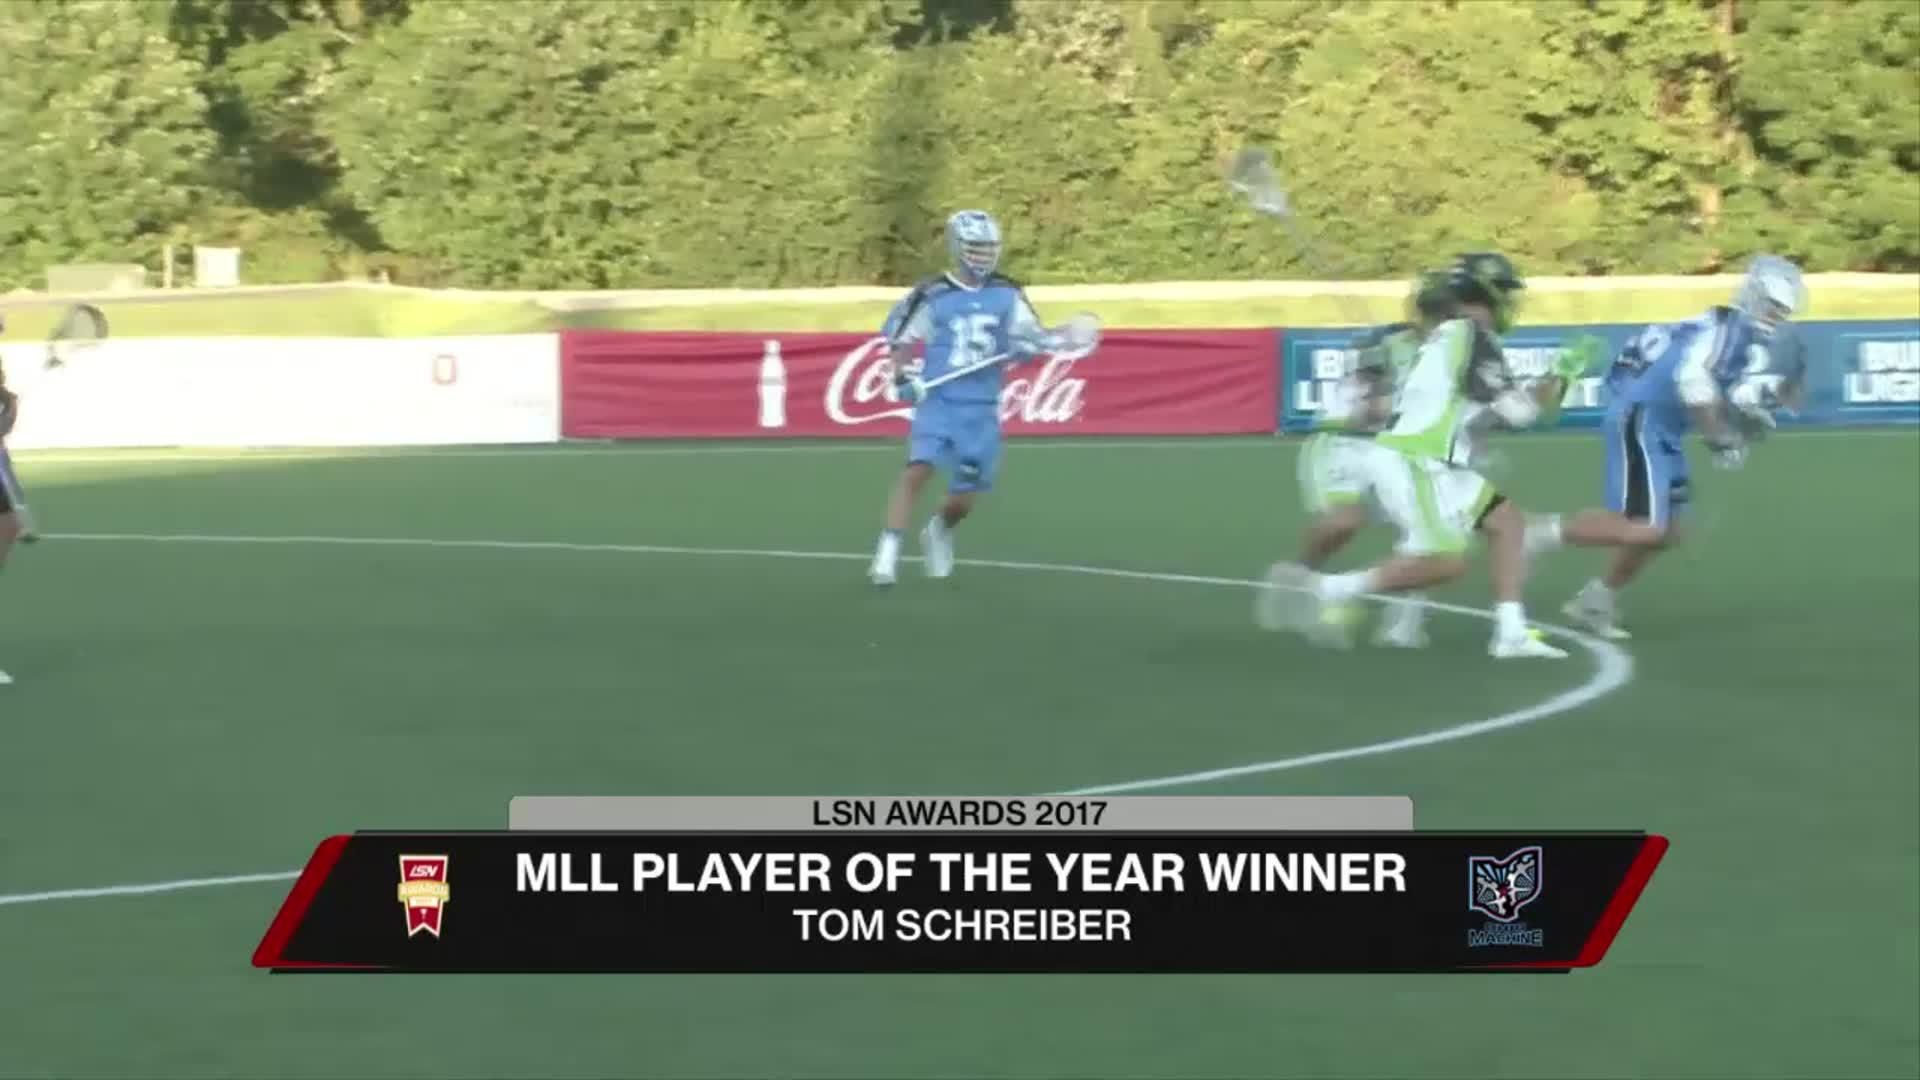 2017 LSN Awards: MLL Player of the Year